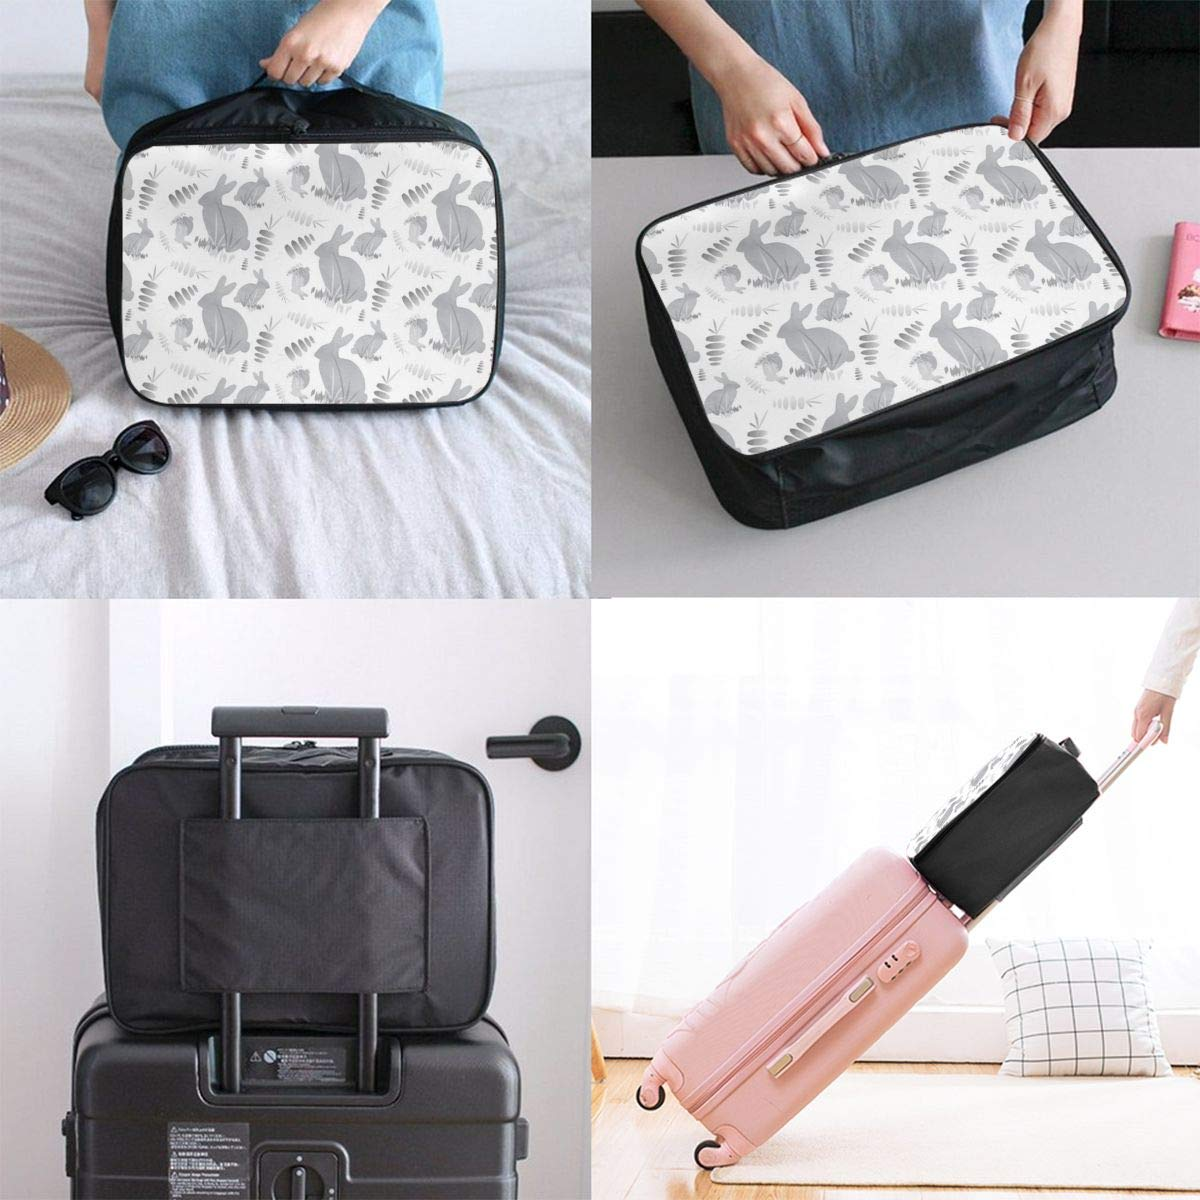 Duck Painting Luggage Hanging Bag Water Repellent Nylon Luggage Duffel Bag Hand Bag For Gym Sports Vacation Travel Duffle Bag Weekender Bag In Trolley Handle